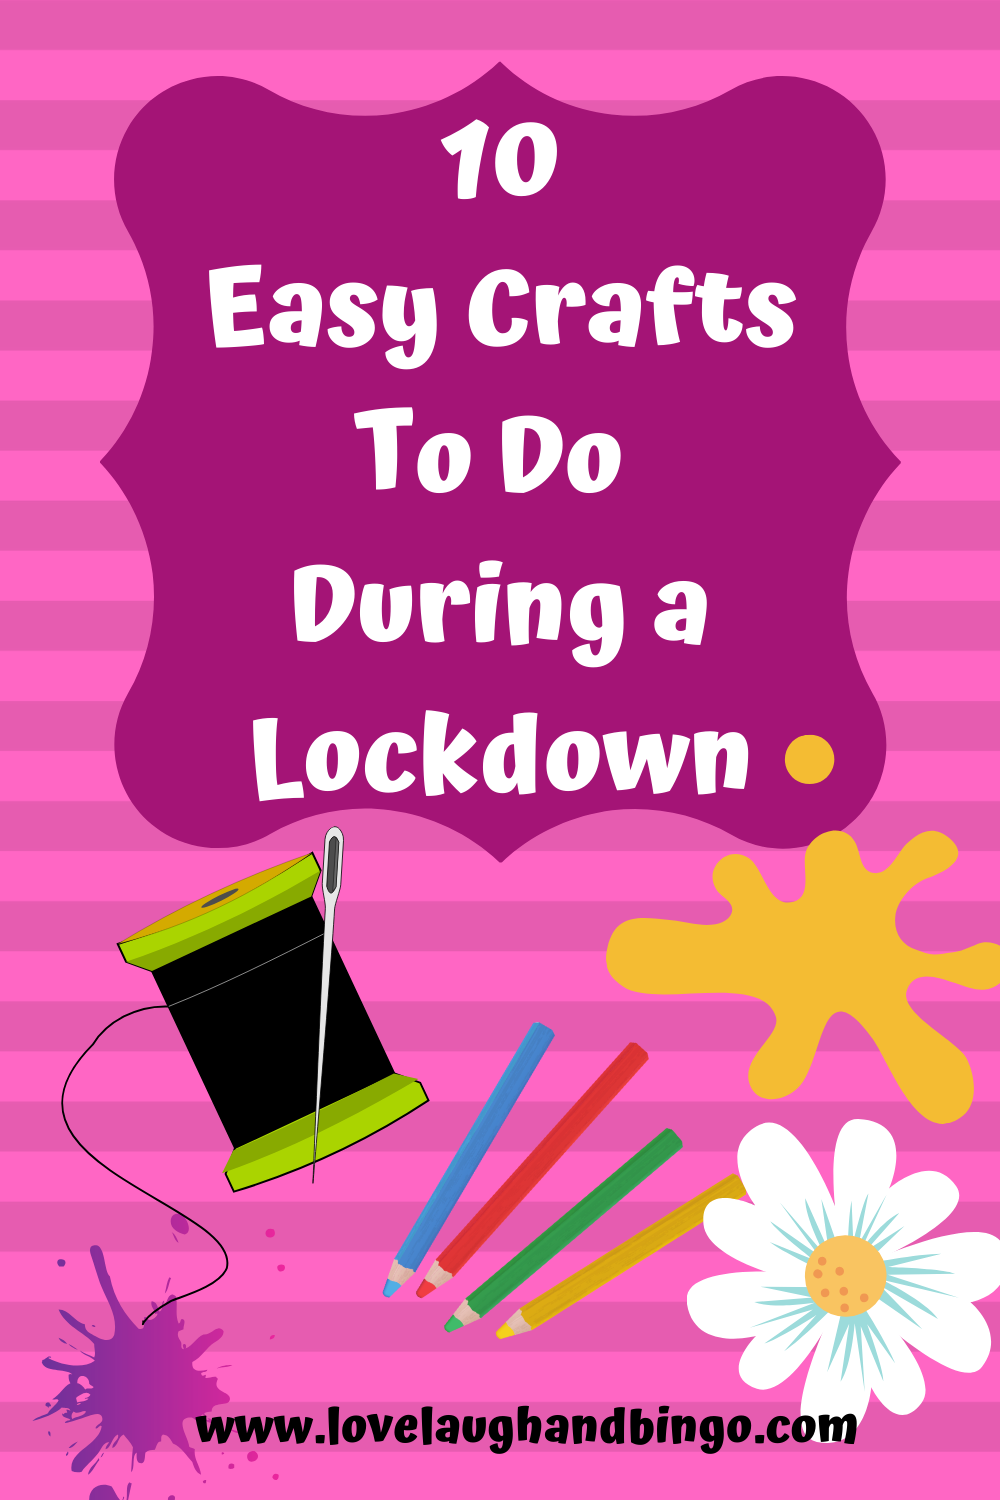 10++ Easy crafts for seniors with dementia ideas